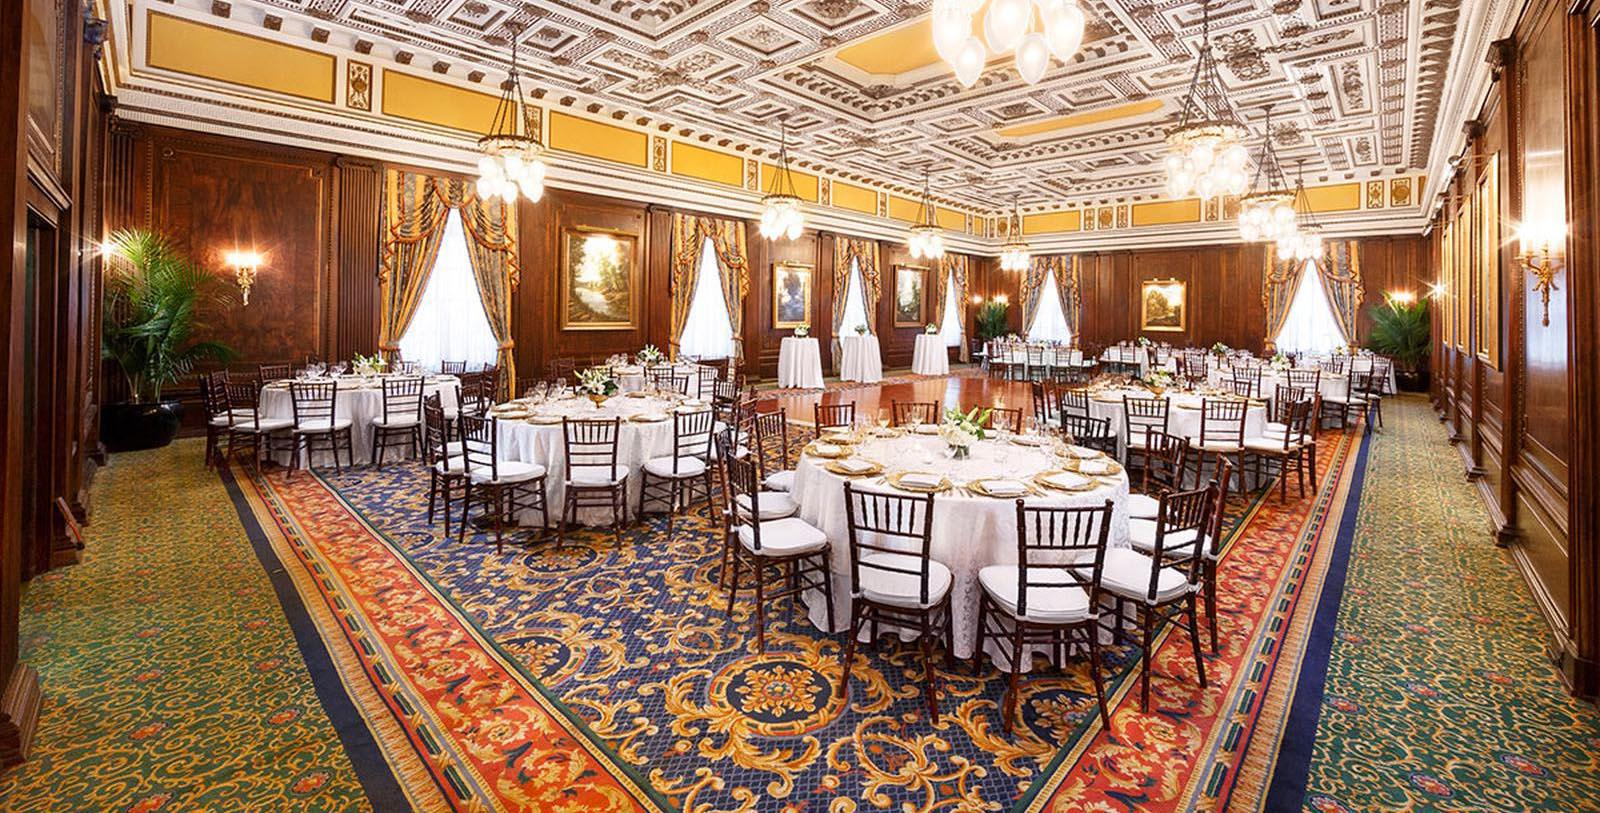 Image of Event Space The Hermitage Hotel, 1910, Member of Historic Hotels of America, in Nashville, Tennessee, Experience